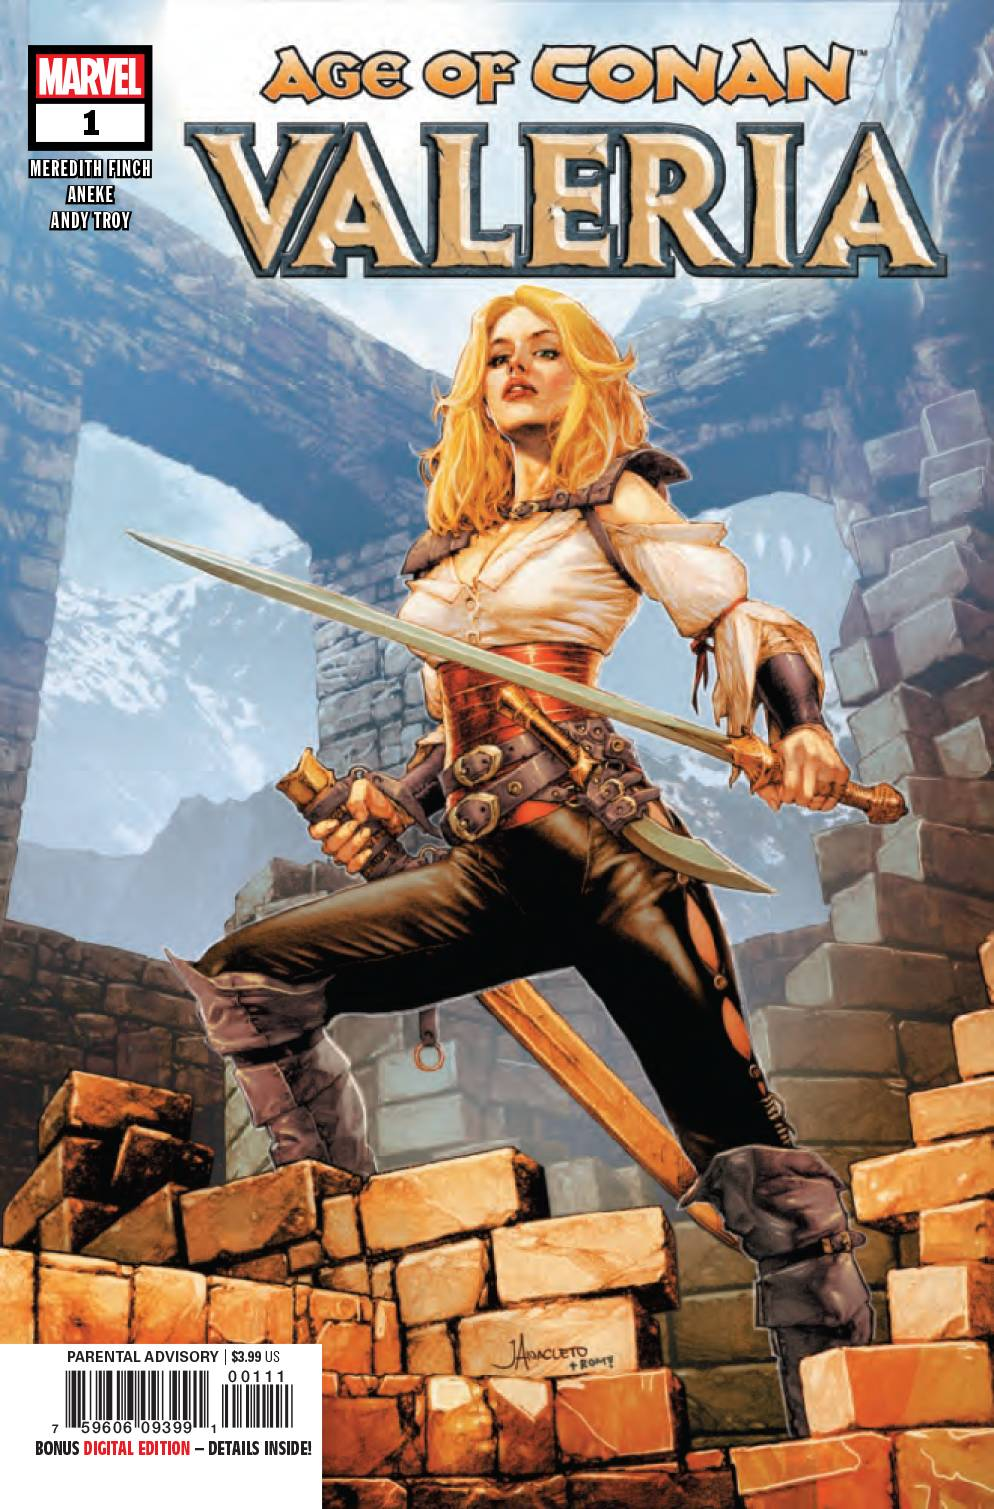 08/14/2019 AGE OF CONAN VALERIA #1 (OF 5)